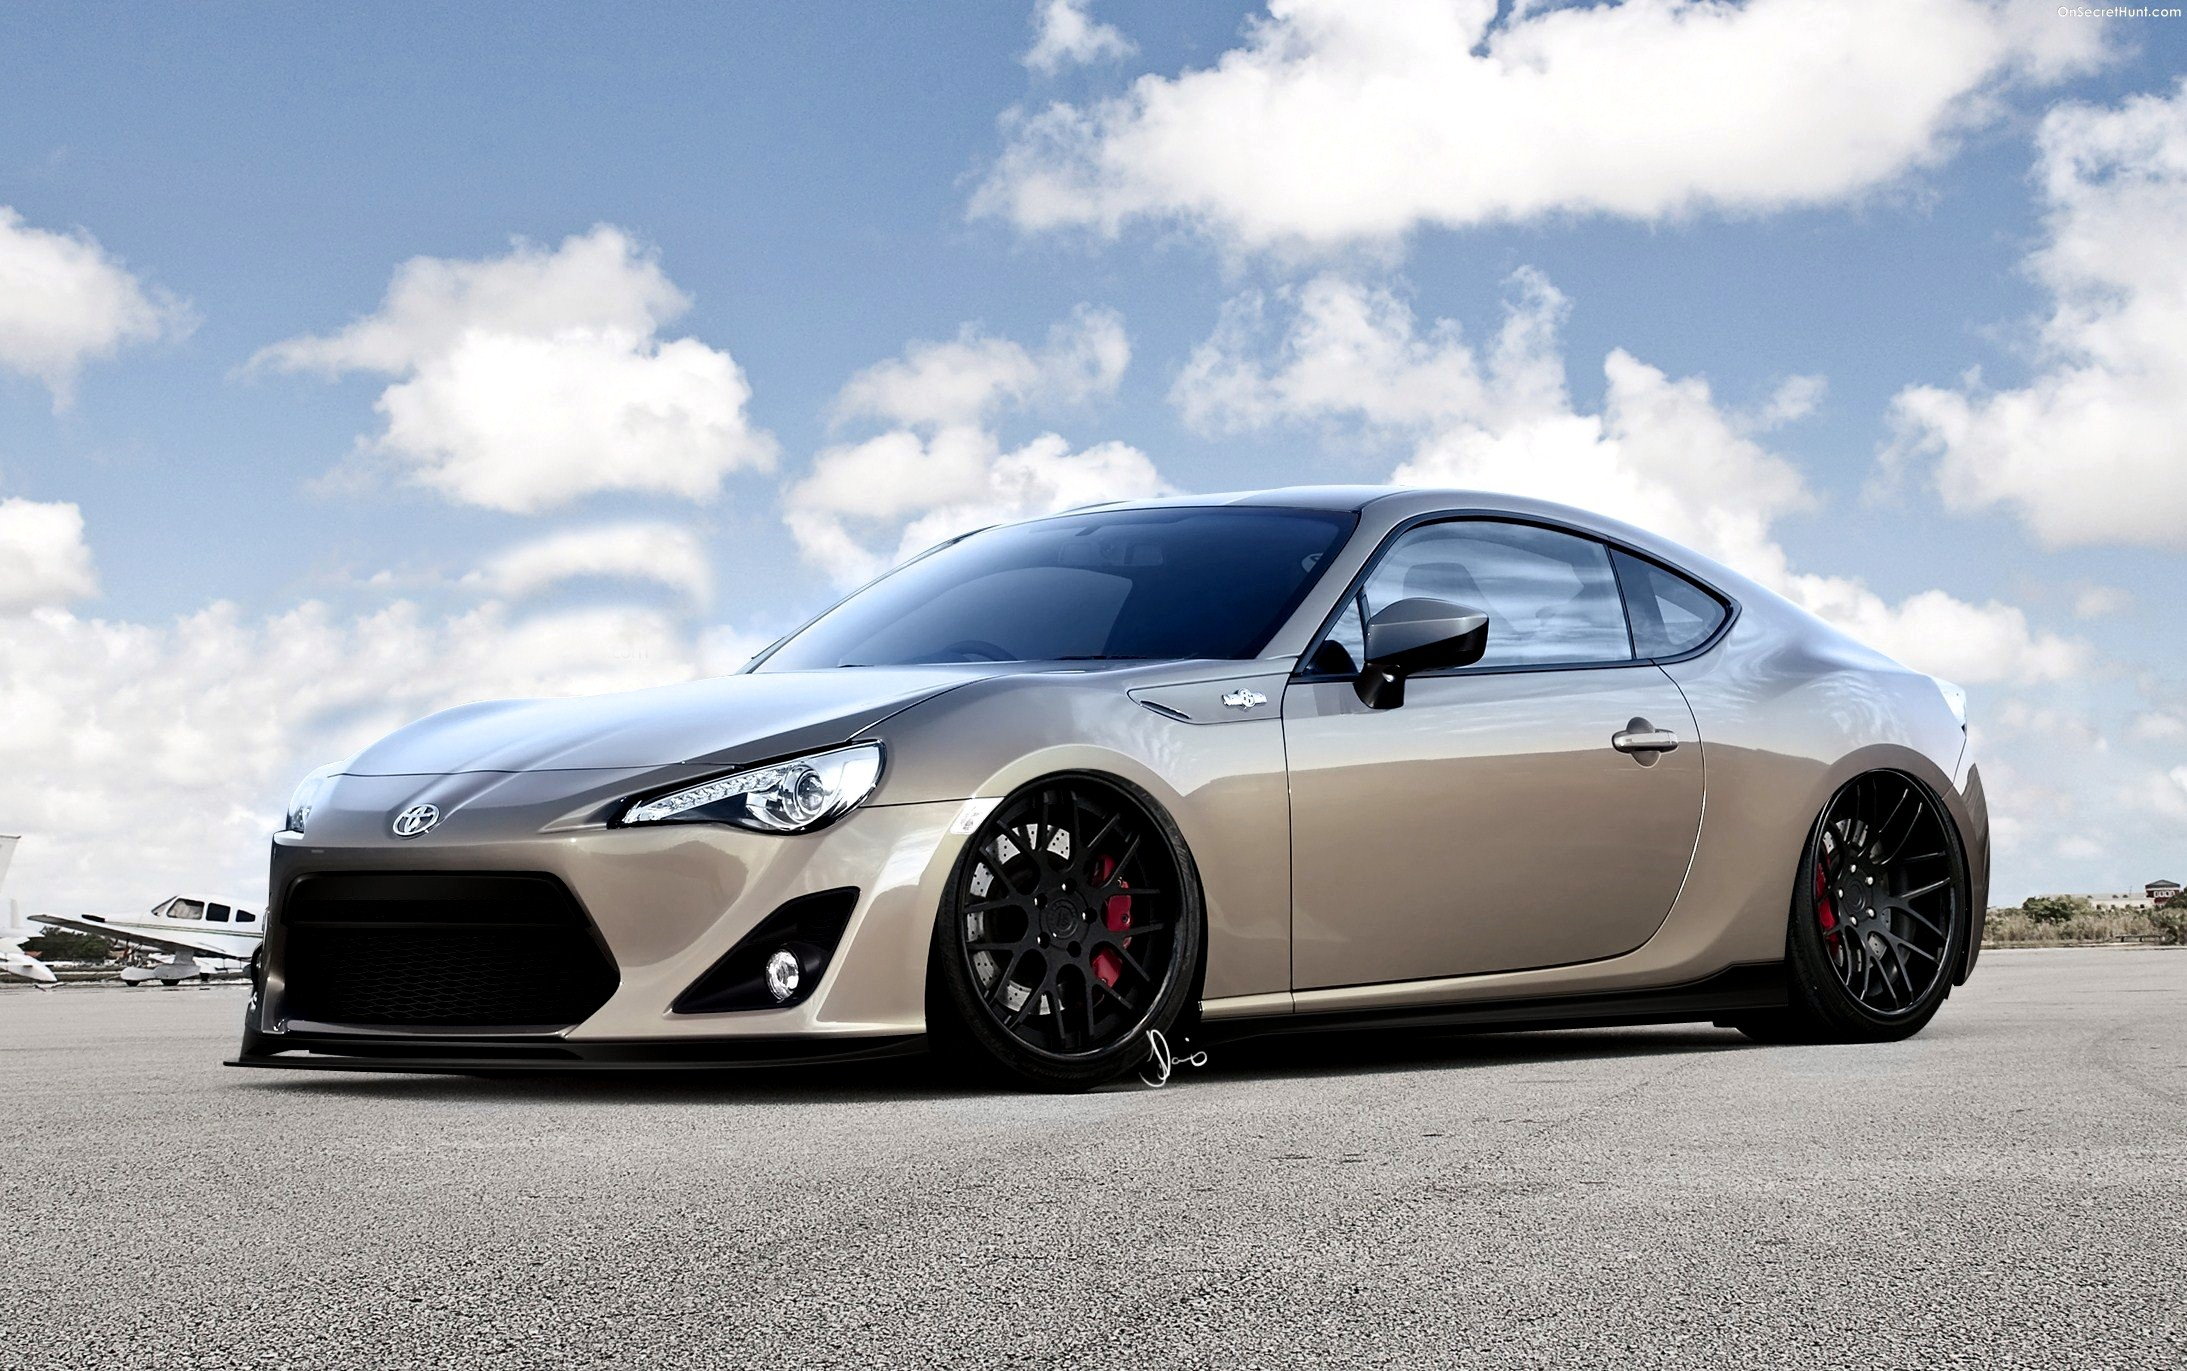 Toyota Gt86 Wallpapers HD Download 2187x1371